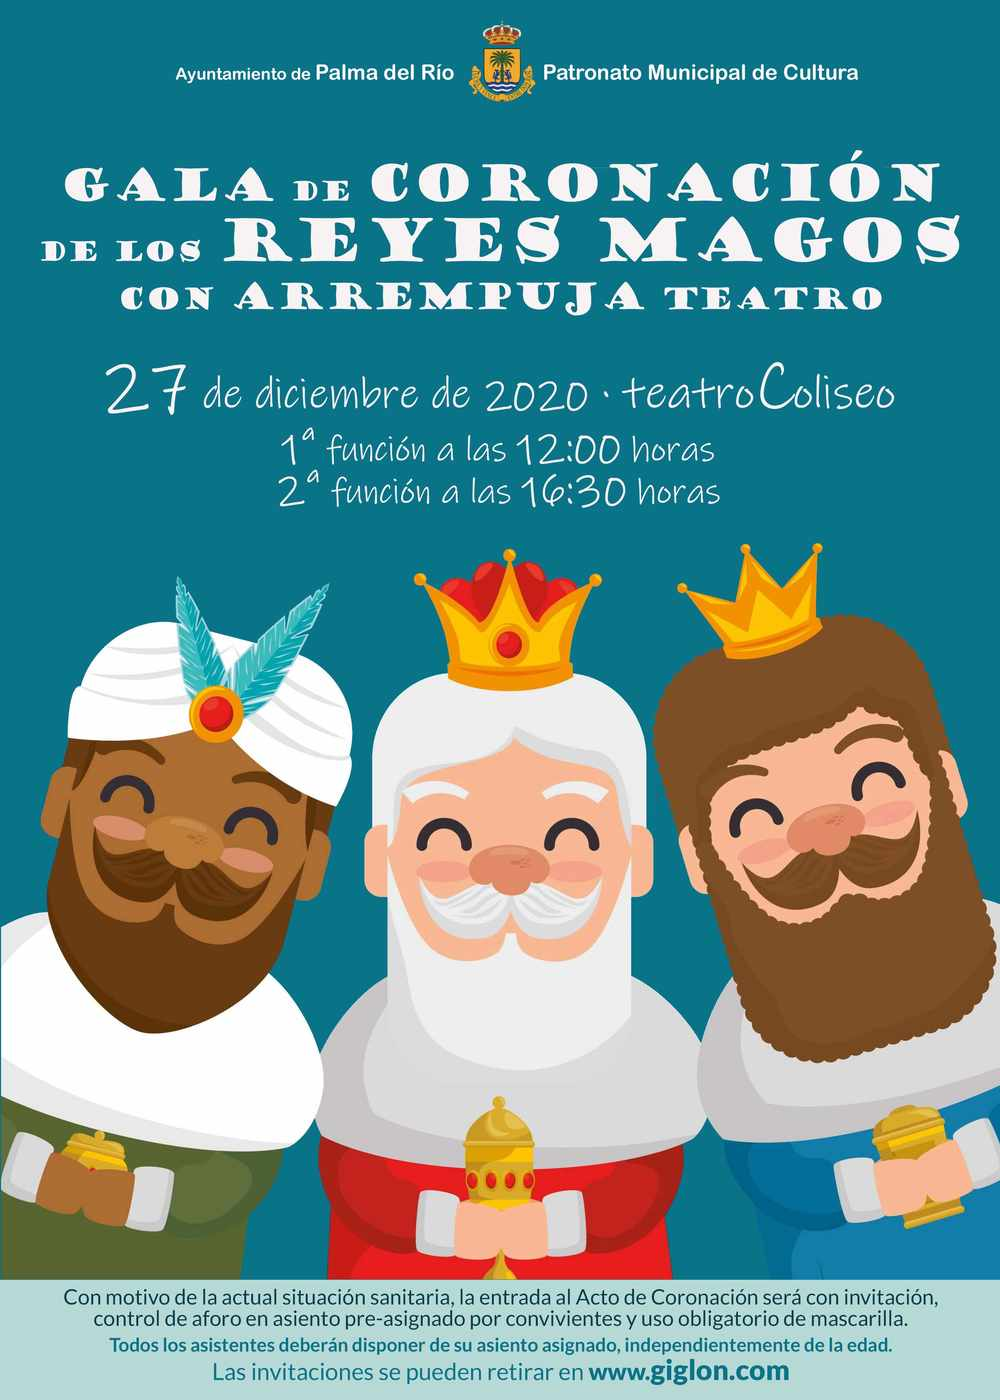 https://www.palmadelrio.es/sites/default/files/cartelweb-coronacion-reyes-2020.jpg